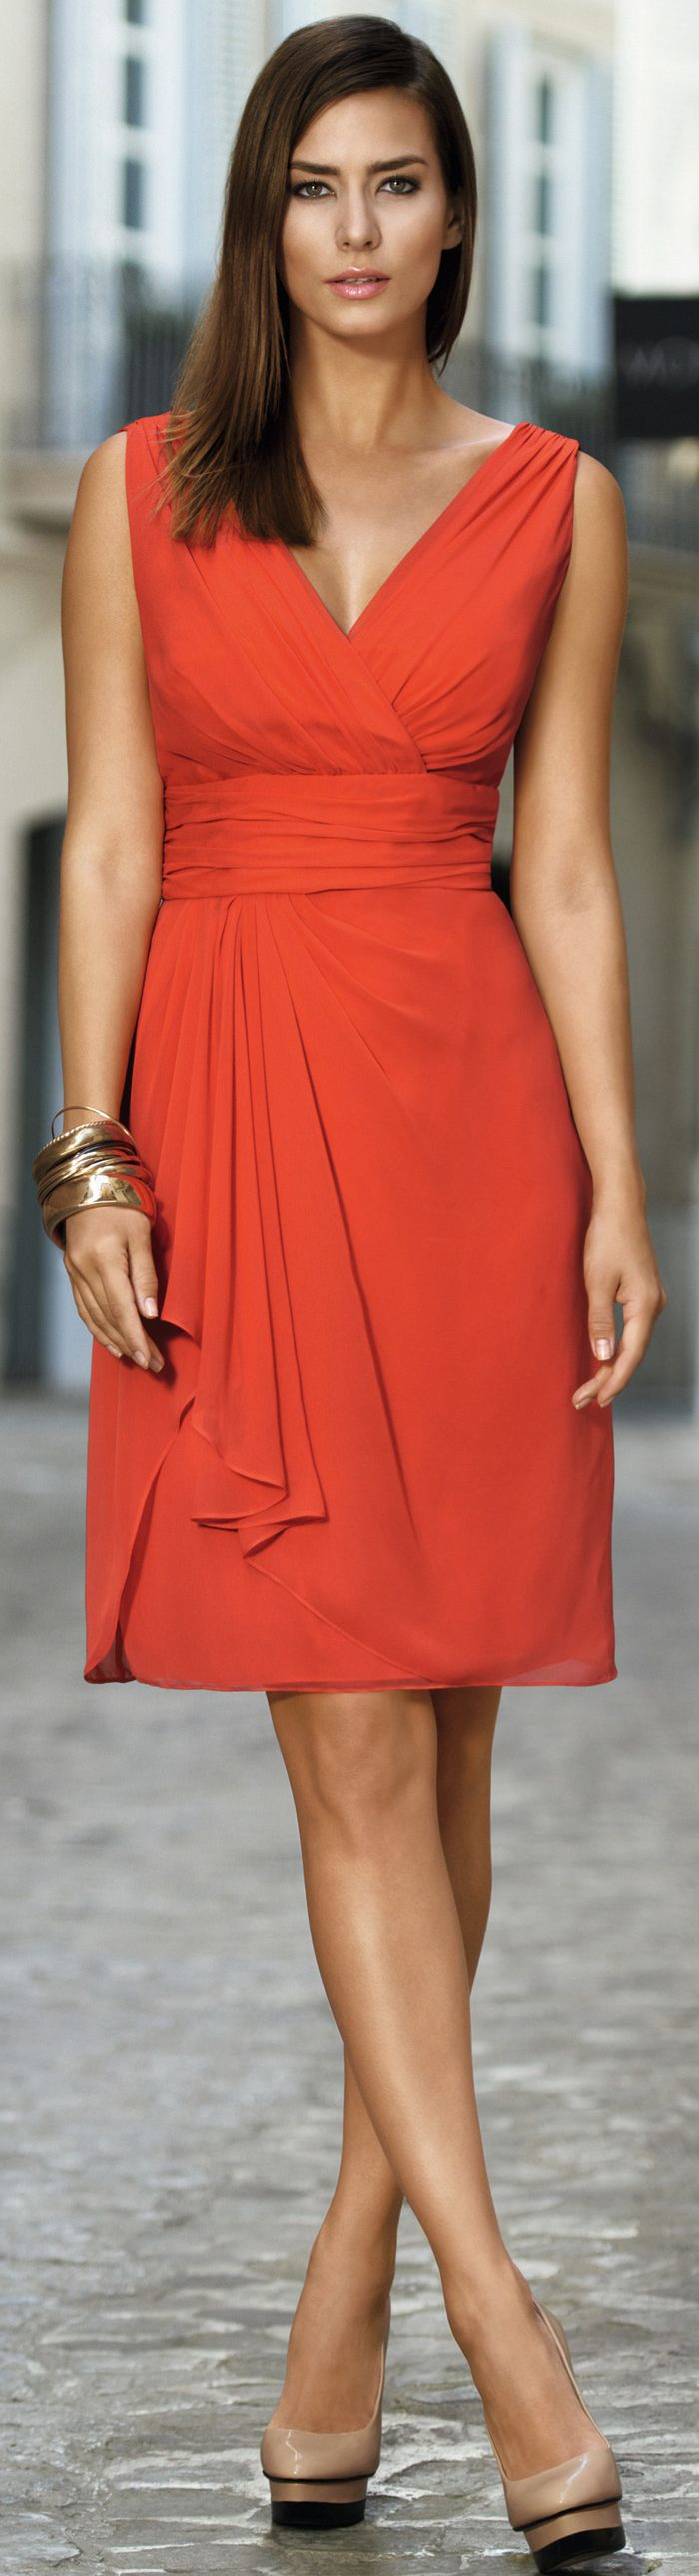 Cocktail dresses in red or orange color